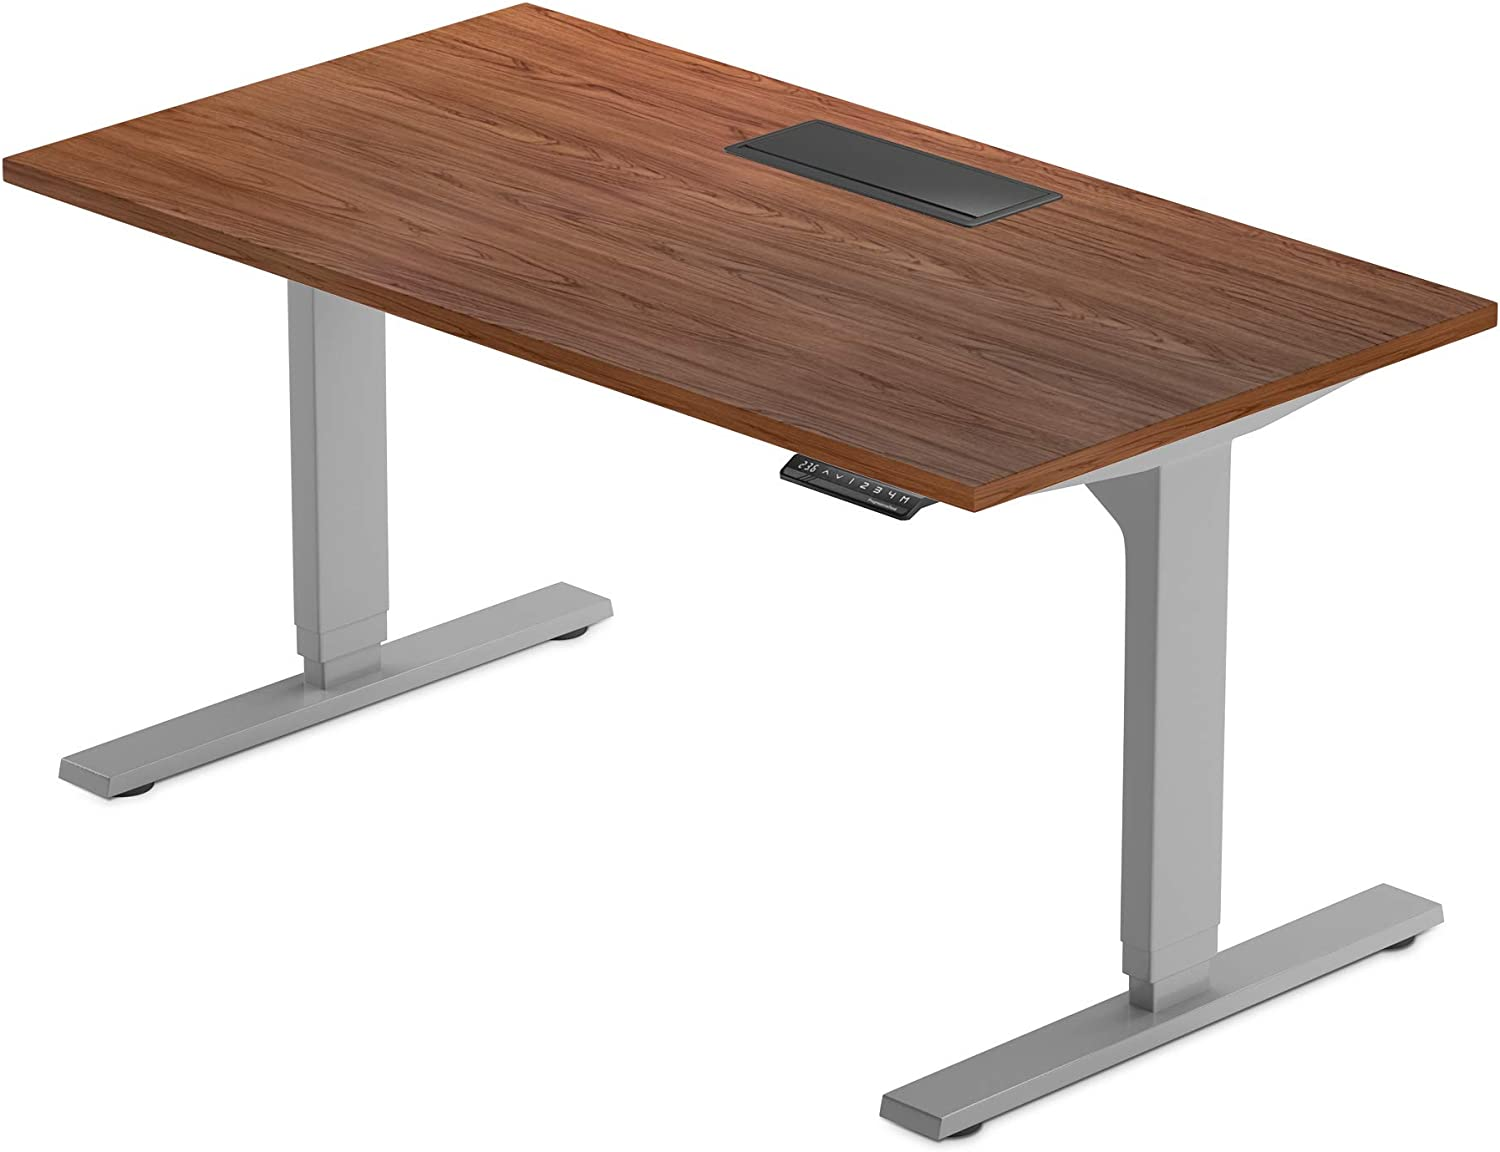 PROGRESSIVE DESK 72 inch Standing Desk, Large Electric Stand up Office Desk, Compatible with Accessories, Wheels 72